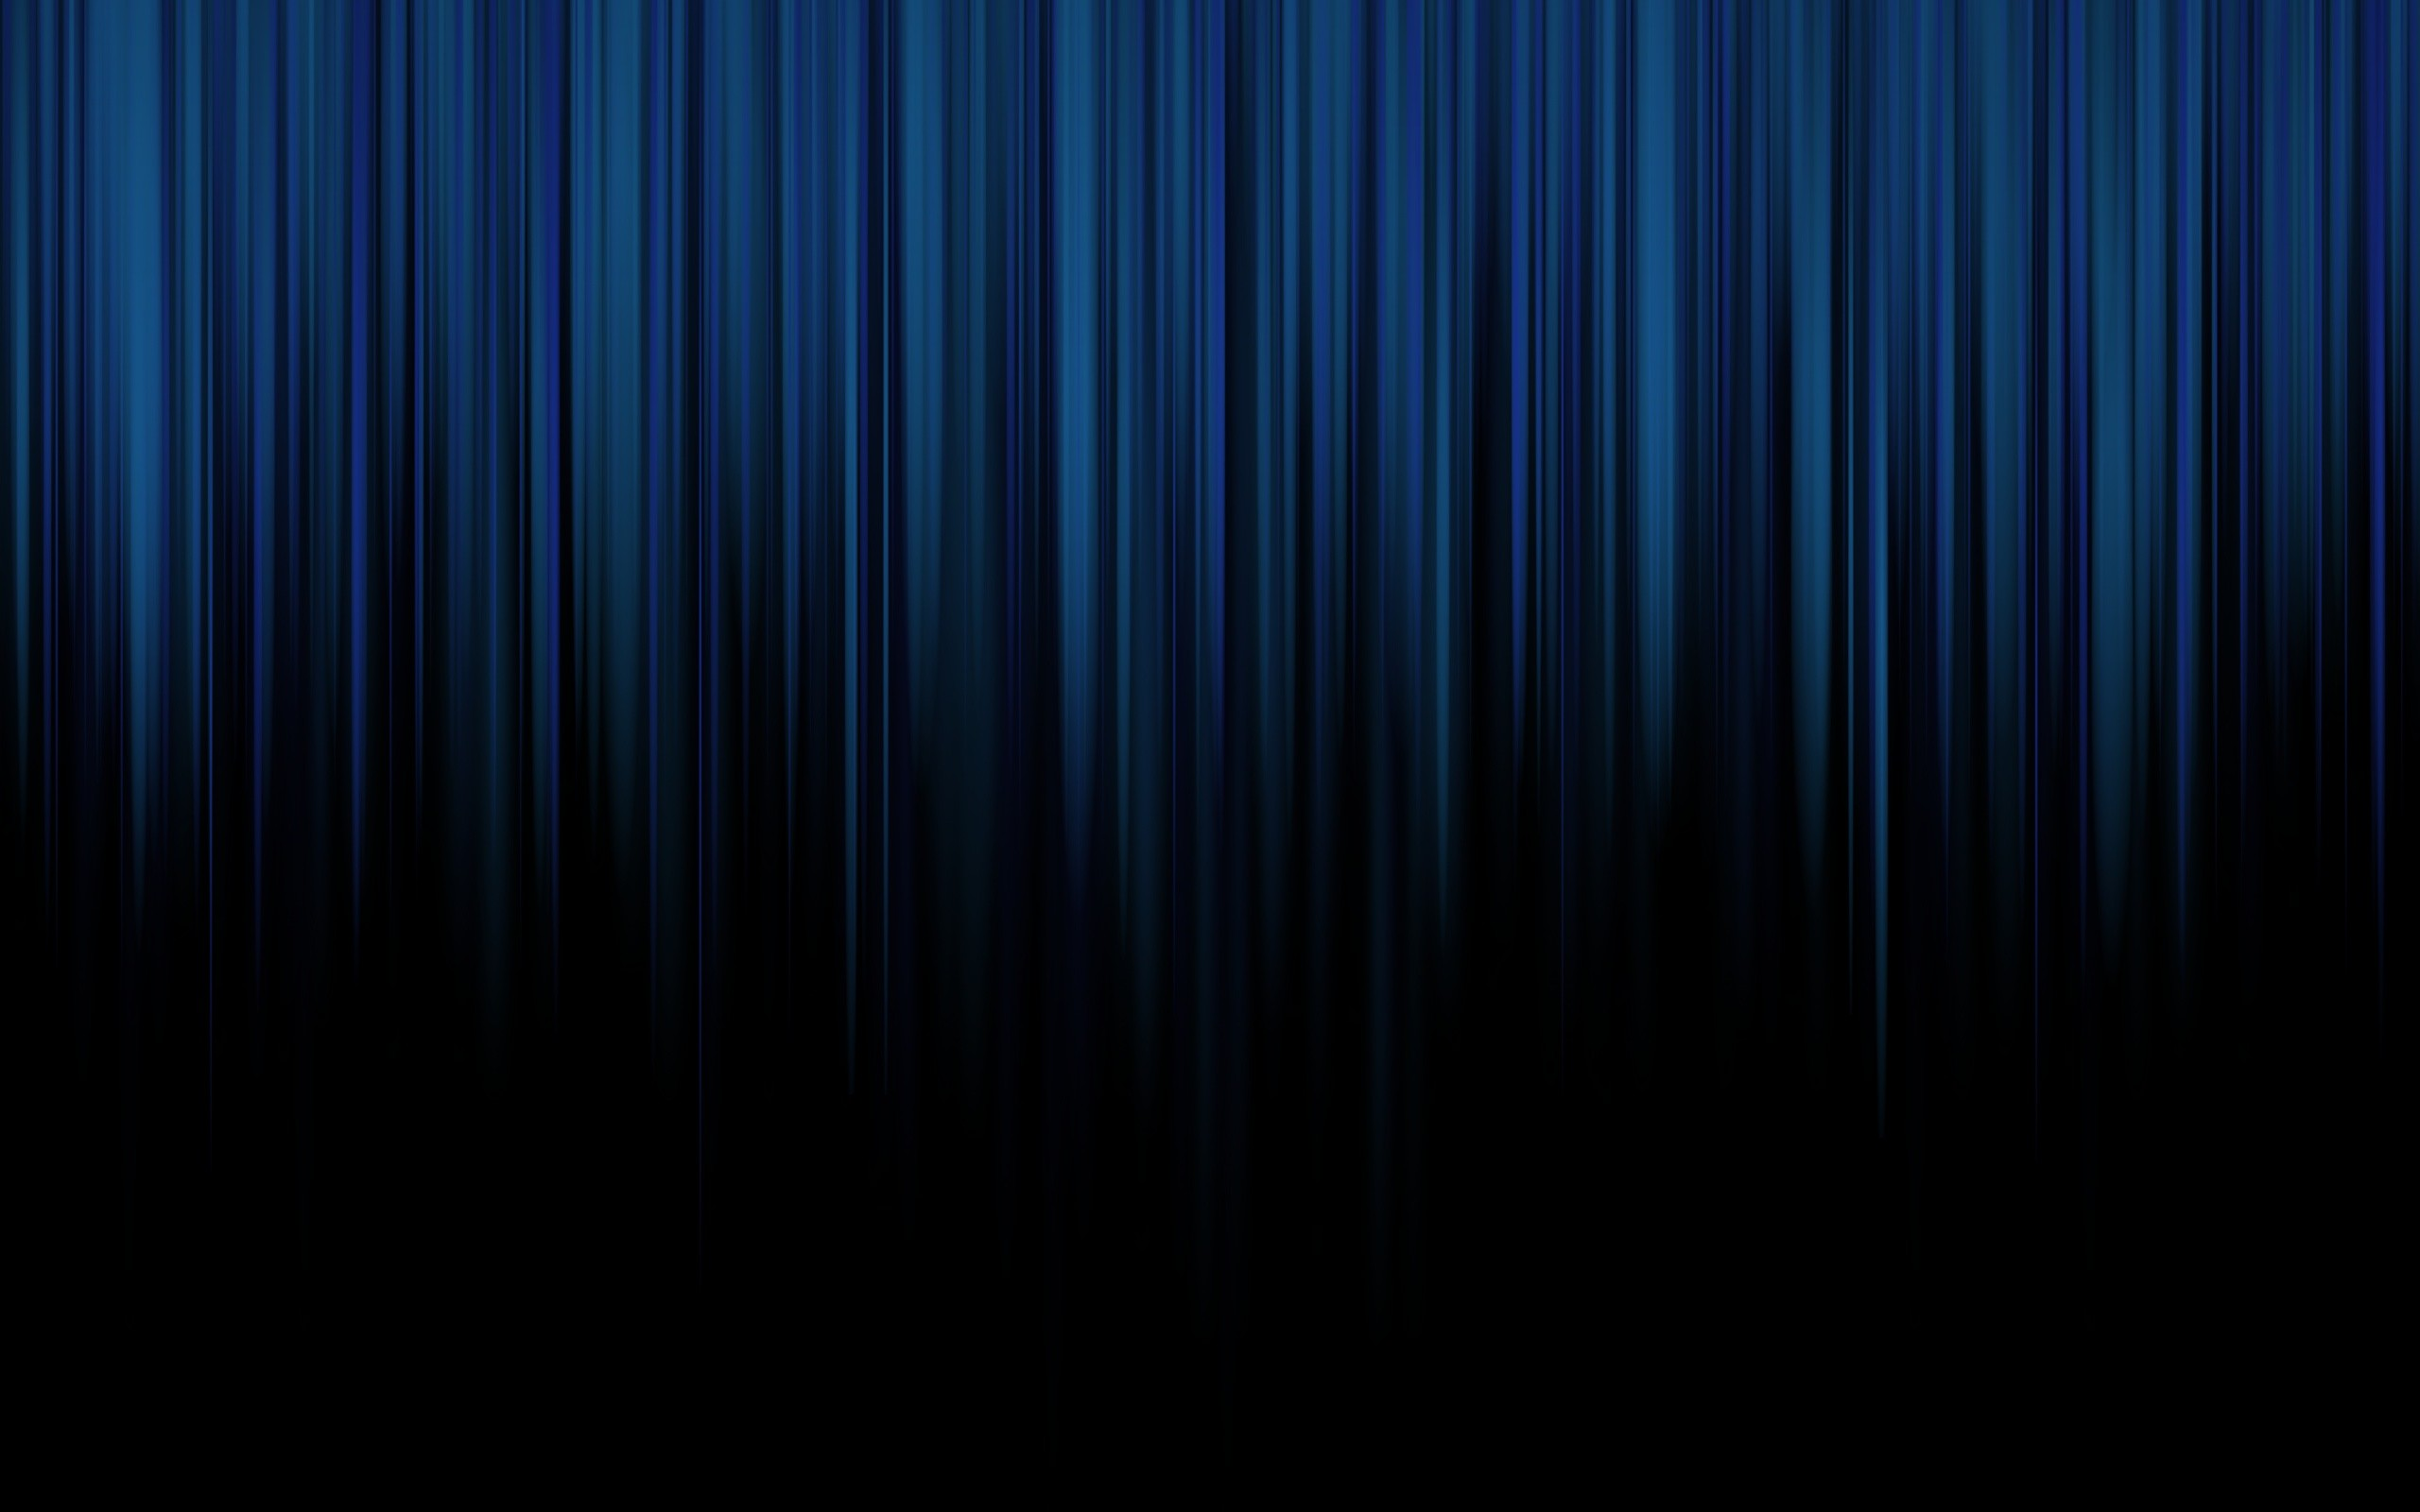 Dark Blue Hd Wallpapers 70 Images